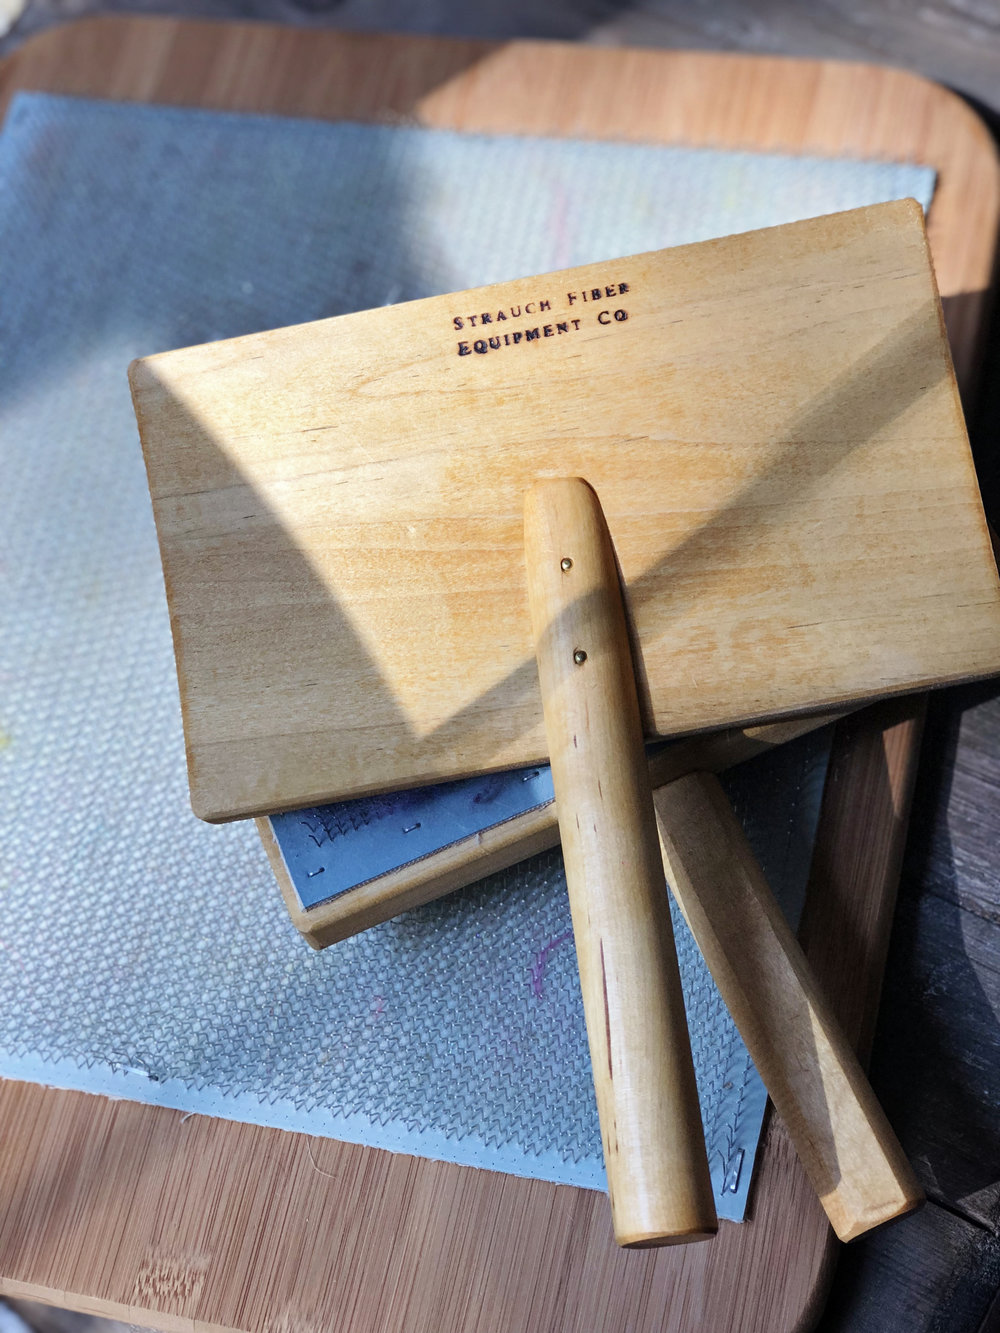 Strauch hand carders and Handmade Blending Board